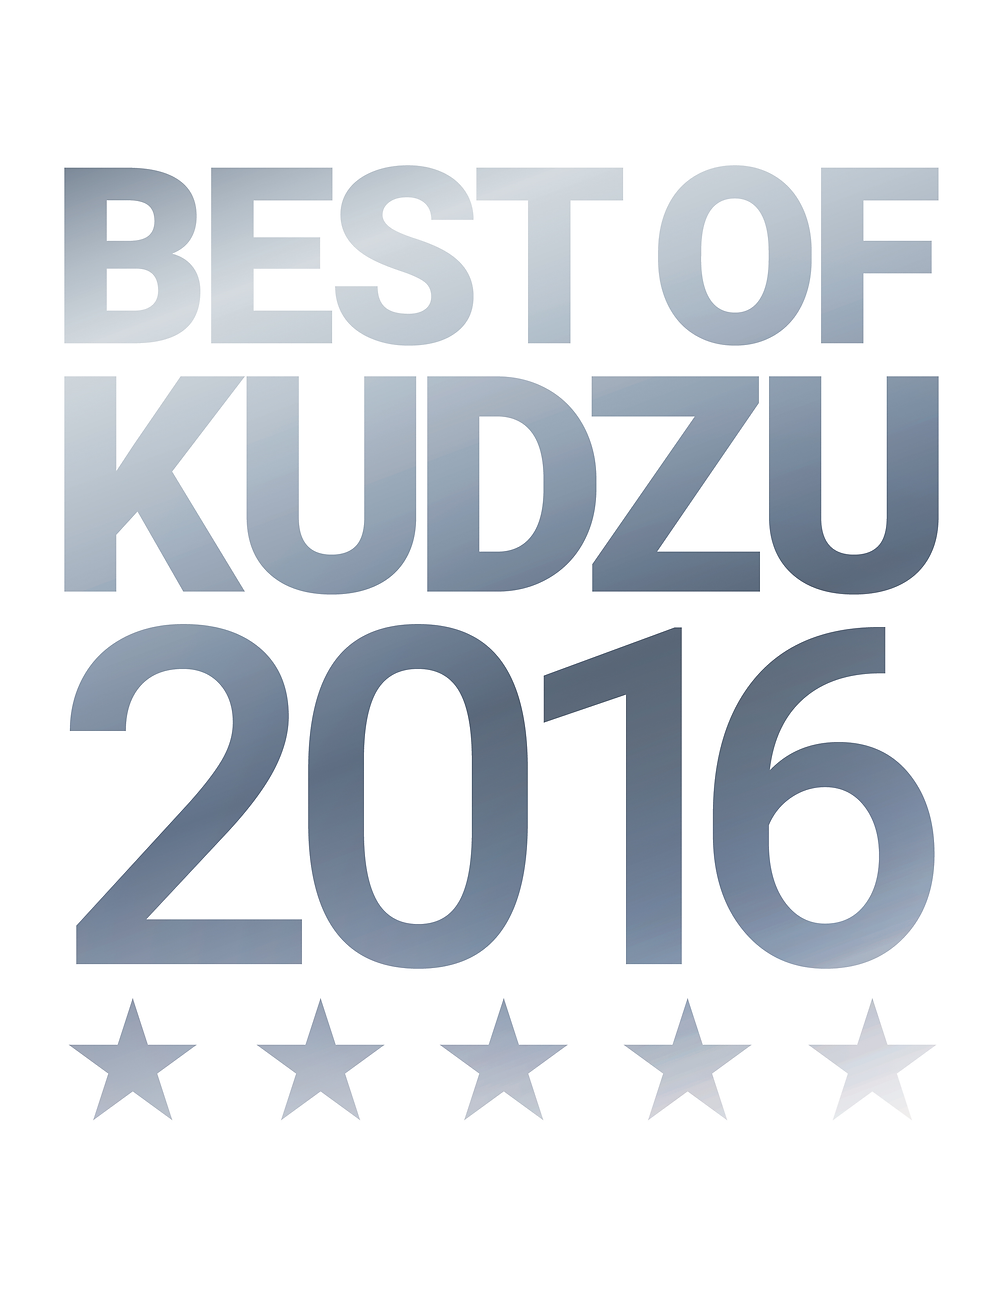 Alluring Hair Extensions Atlanta wins the 2016 Best of Kudzu Award for 3 consecutive years in a row!